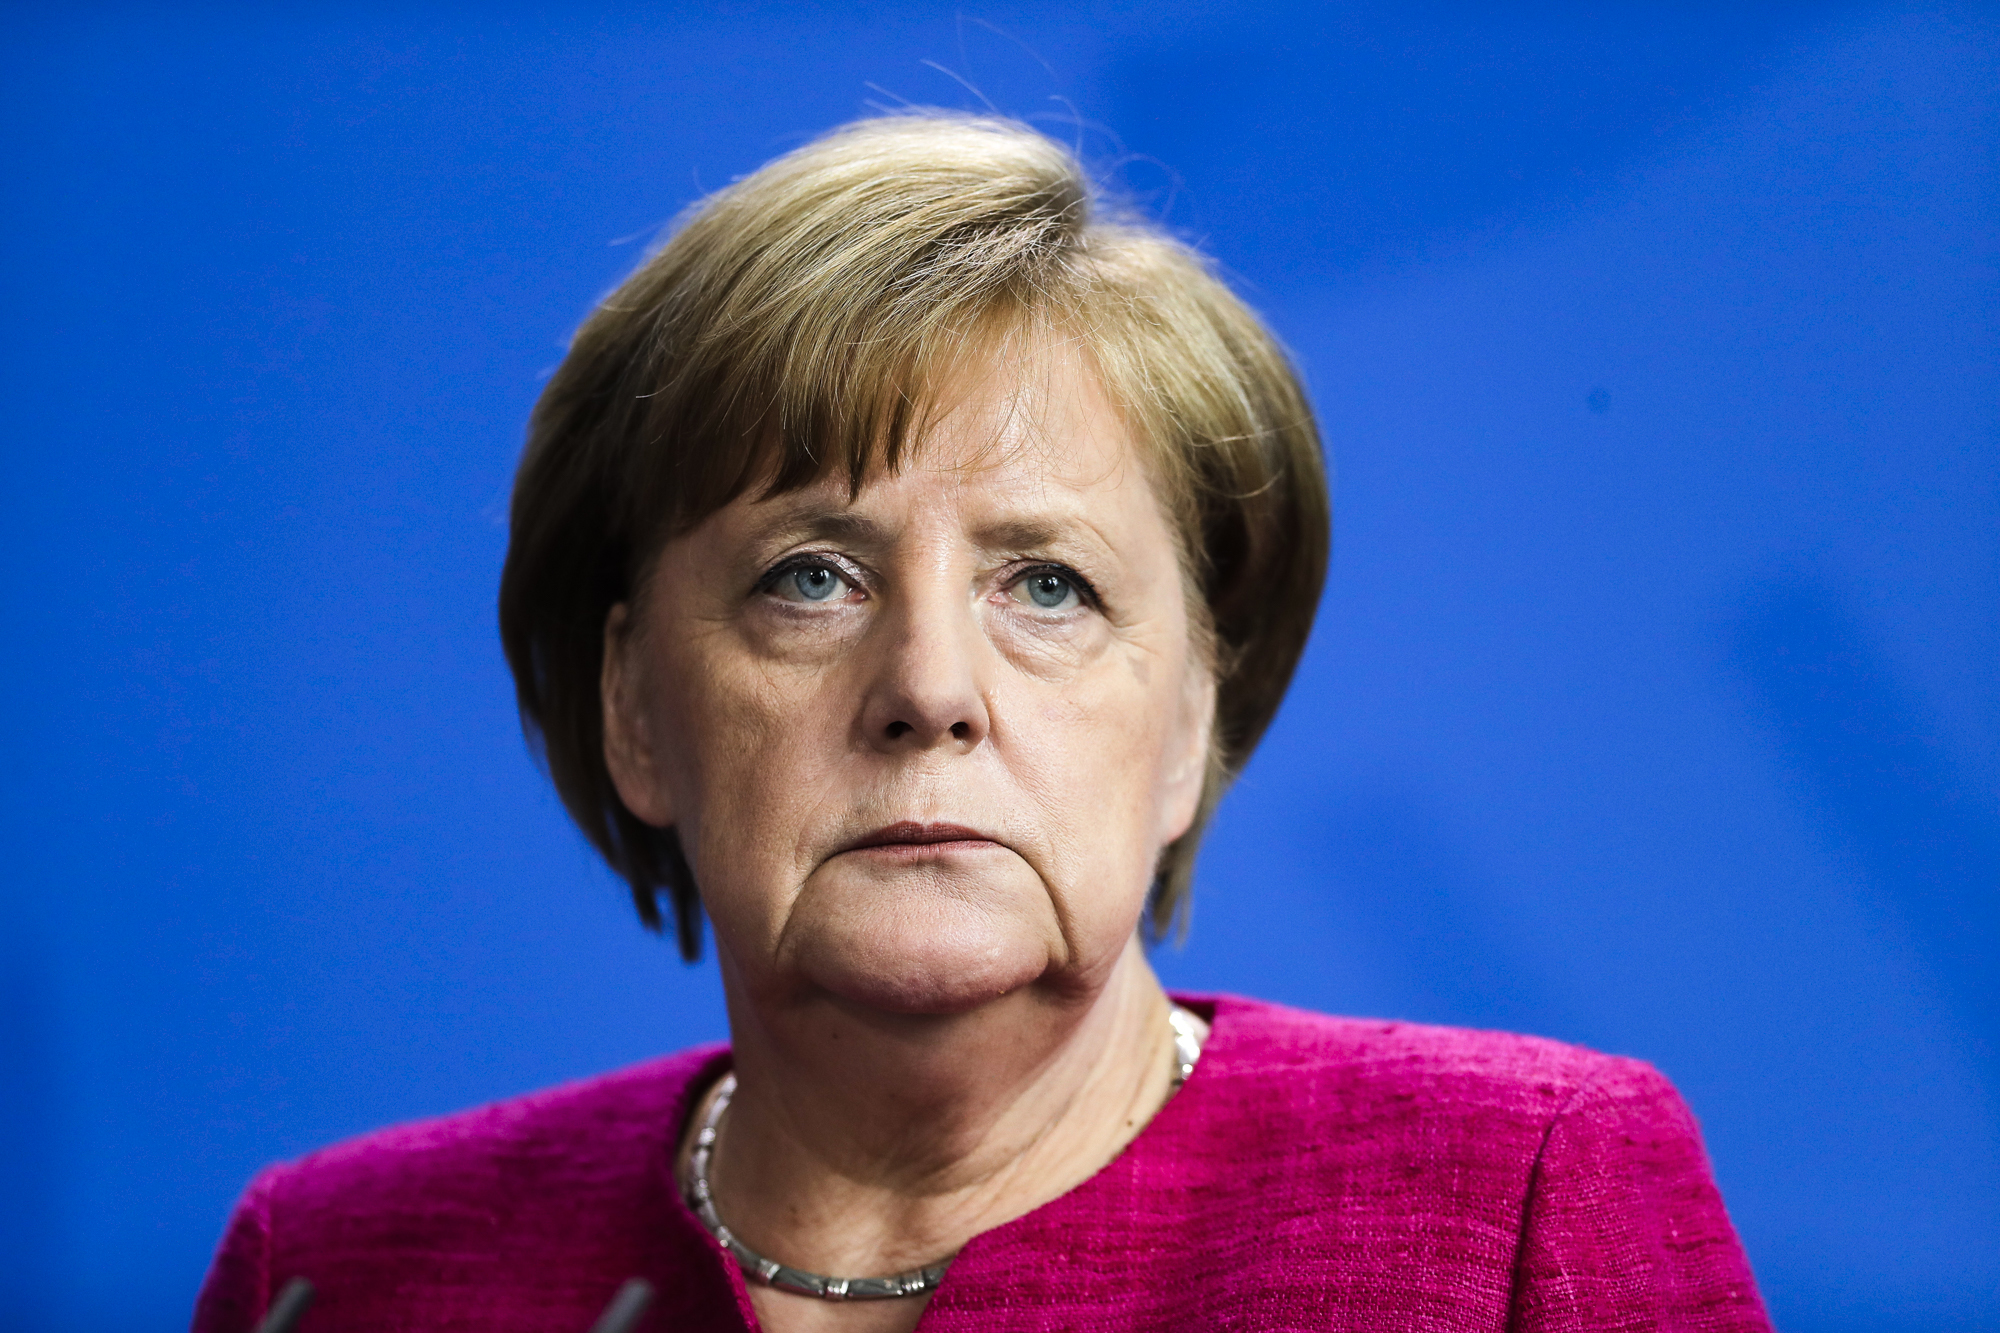 Merkel seeks European Union  migrant talks as German coalition crisis looms -paper